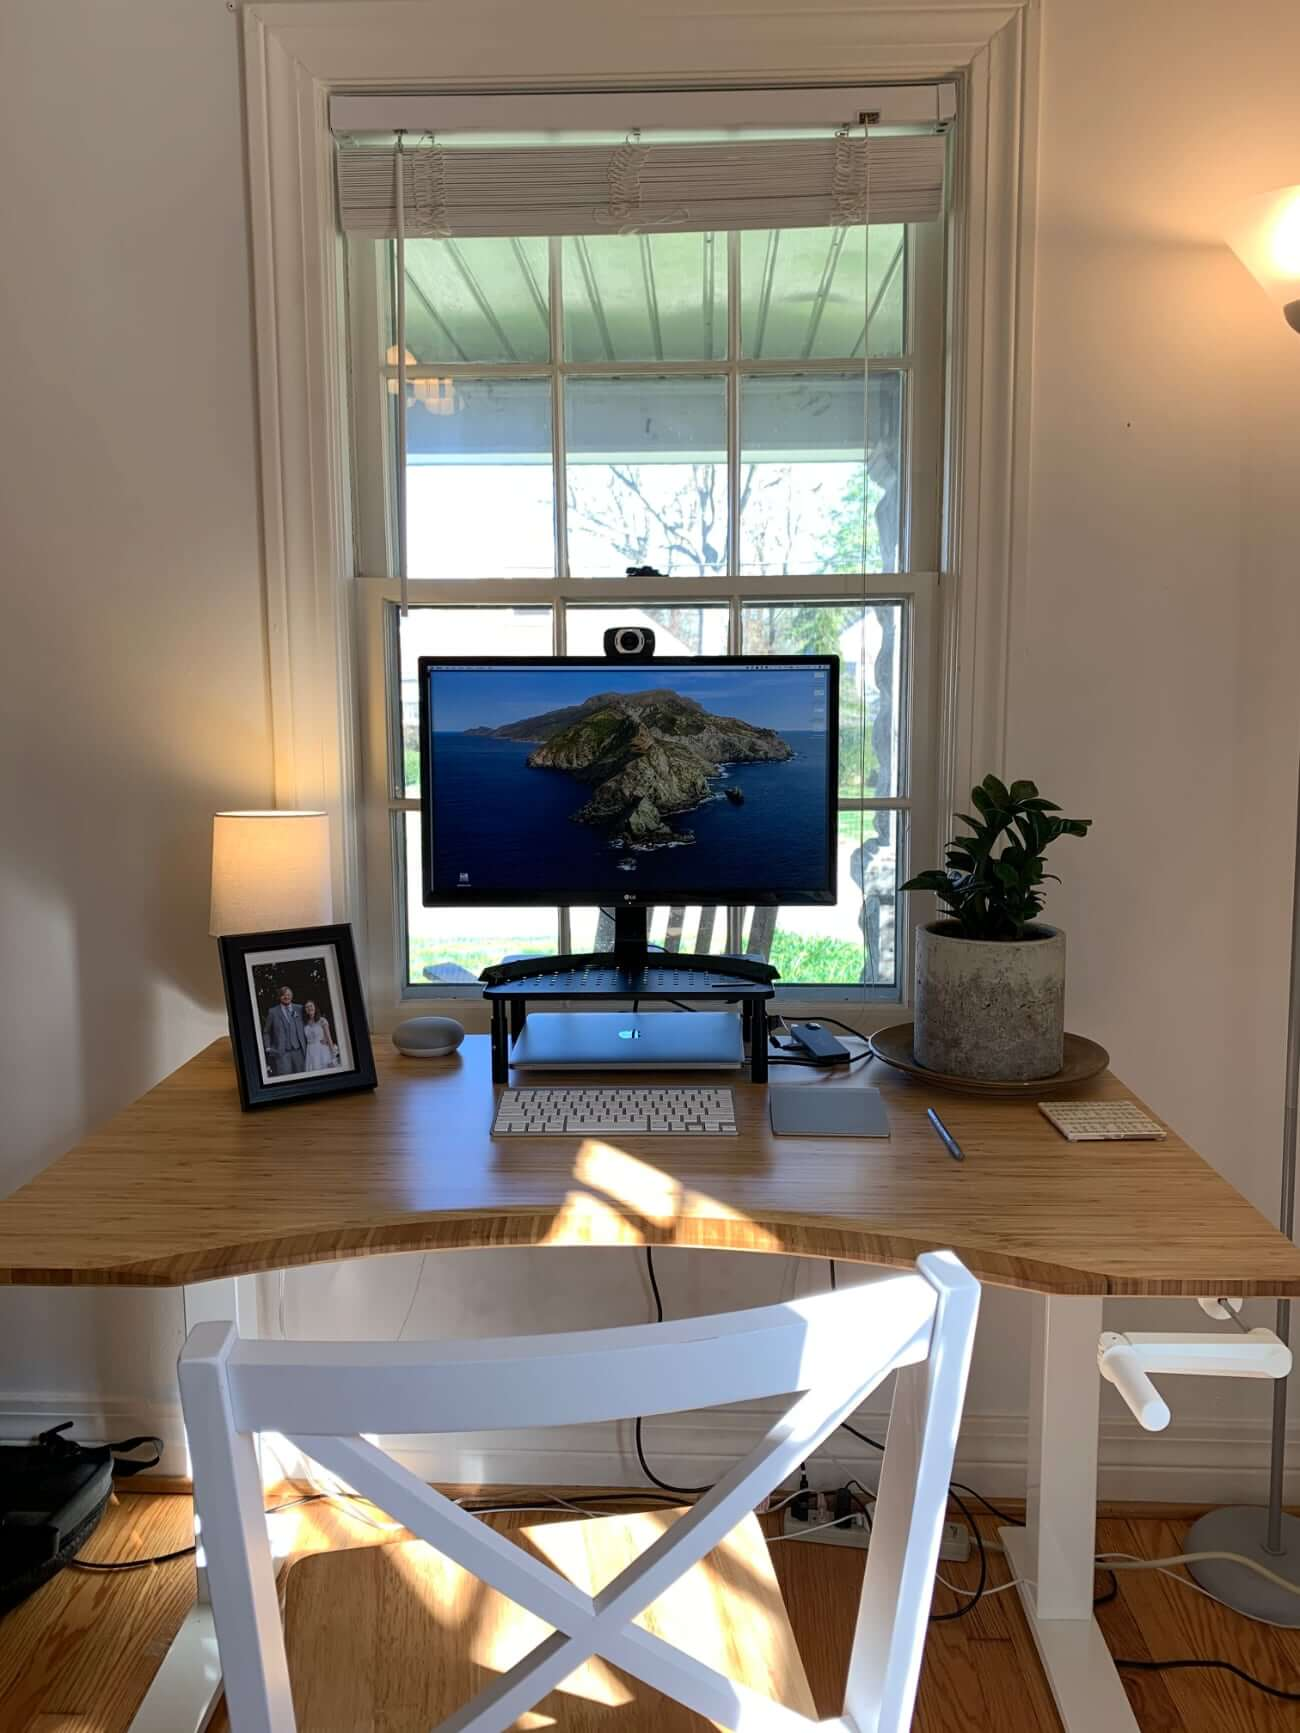 Image of Chris's desk in front of a large window